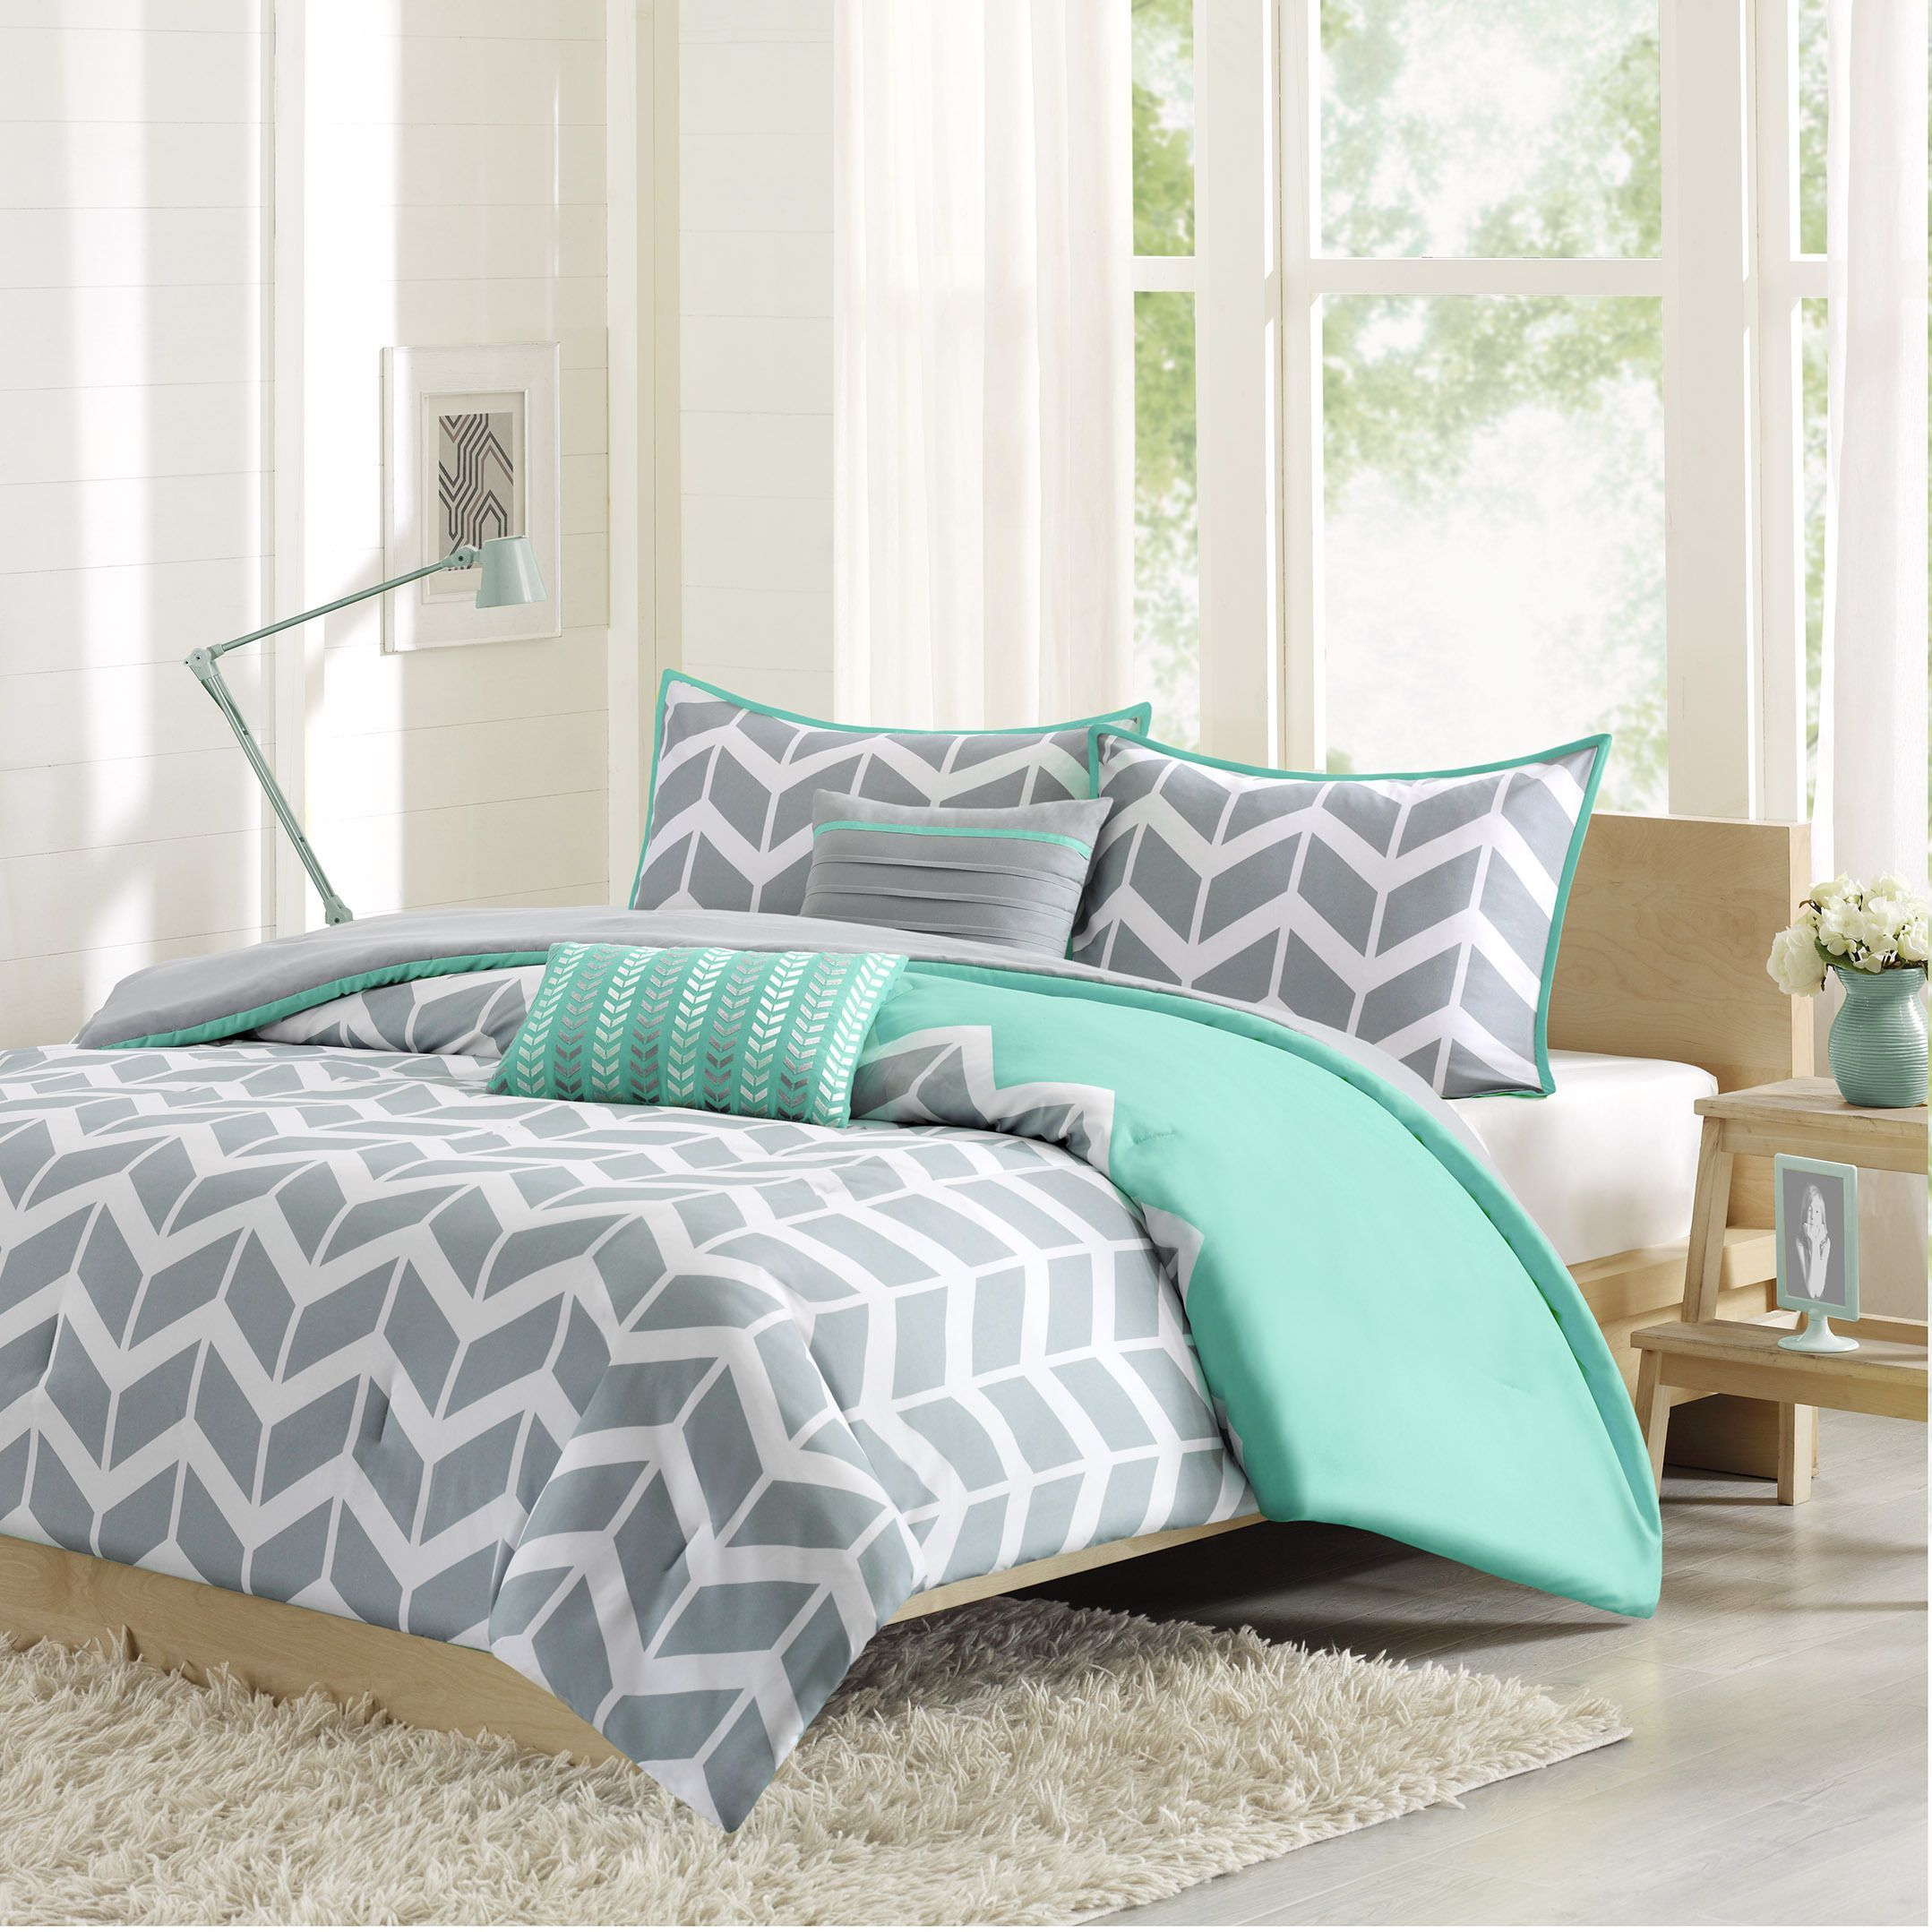 Attractive Intelligent Design Laila 5 Piece Comforter Set   Overstock Shopping   The  Best Prices On ID Intelligent Designs Teen Comforter Sets